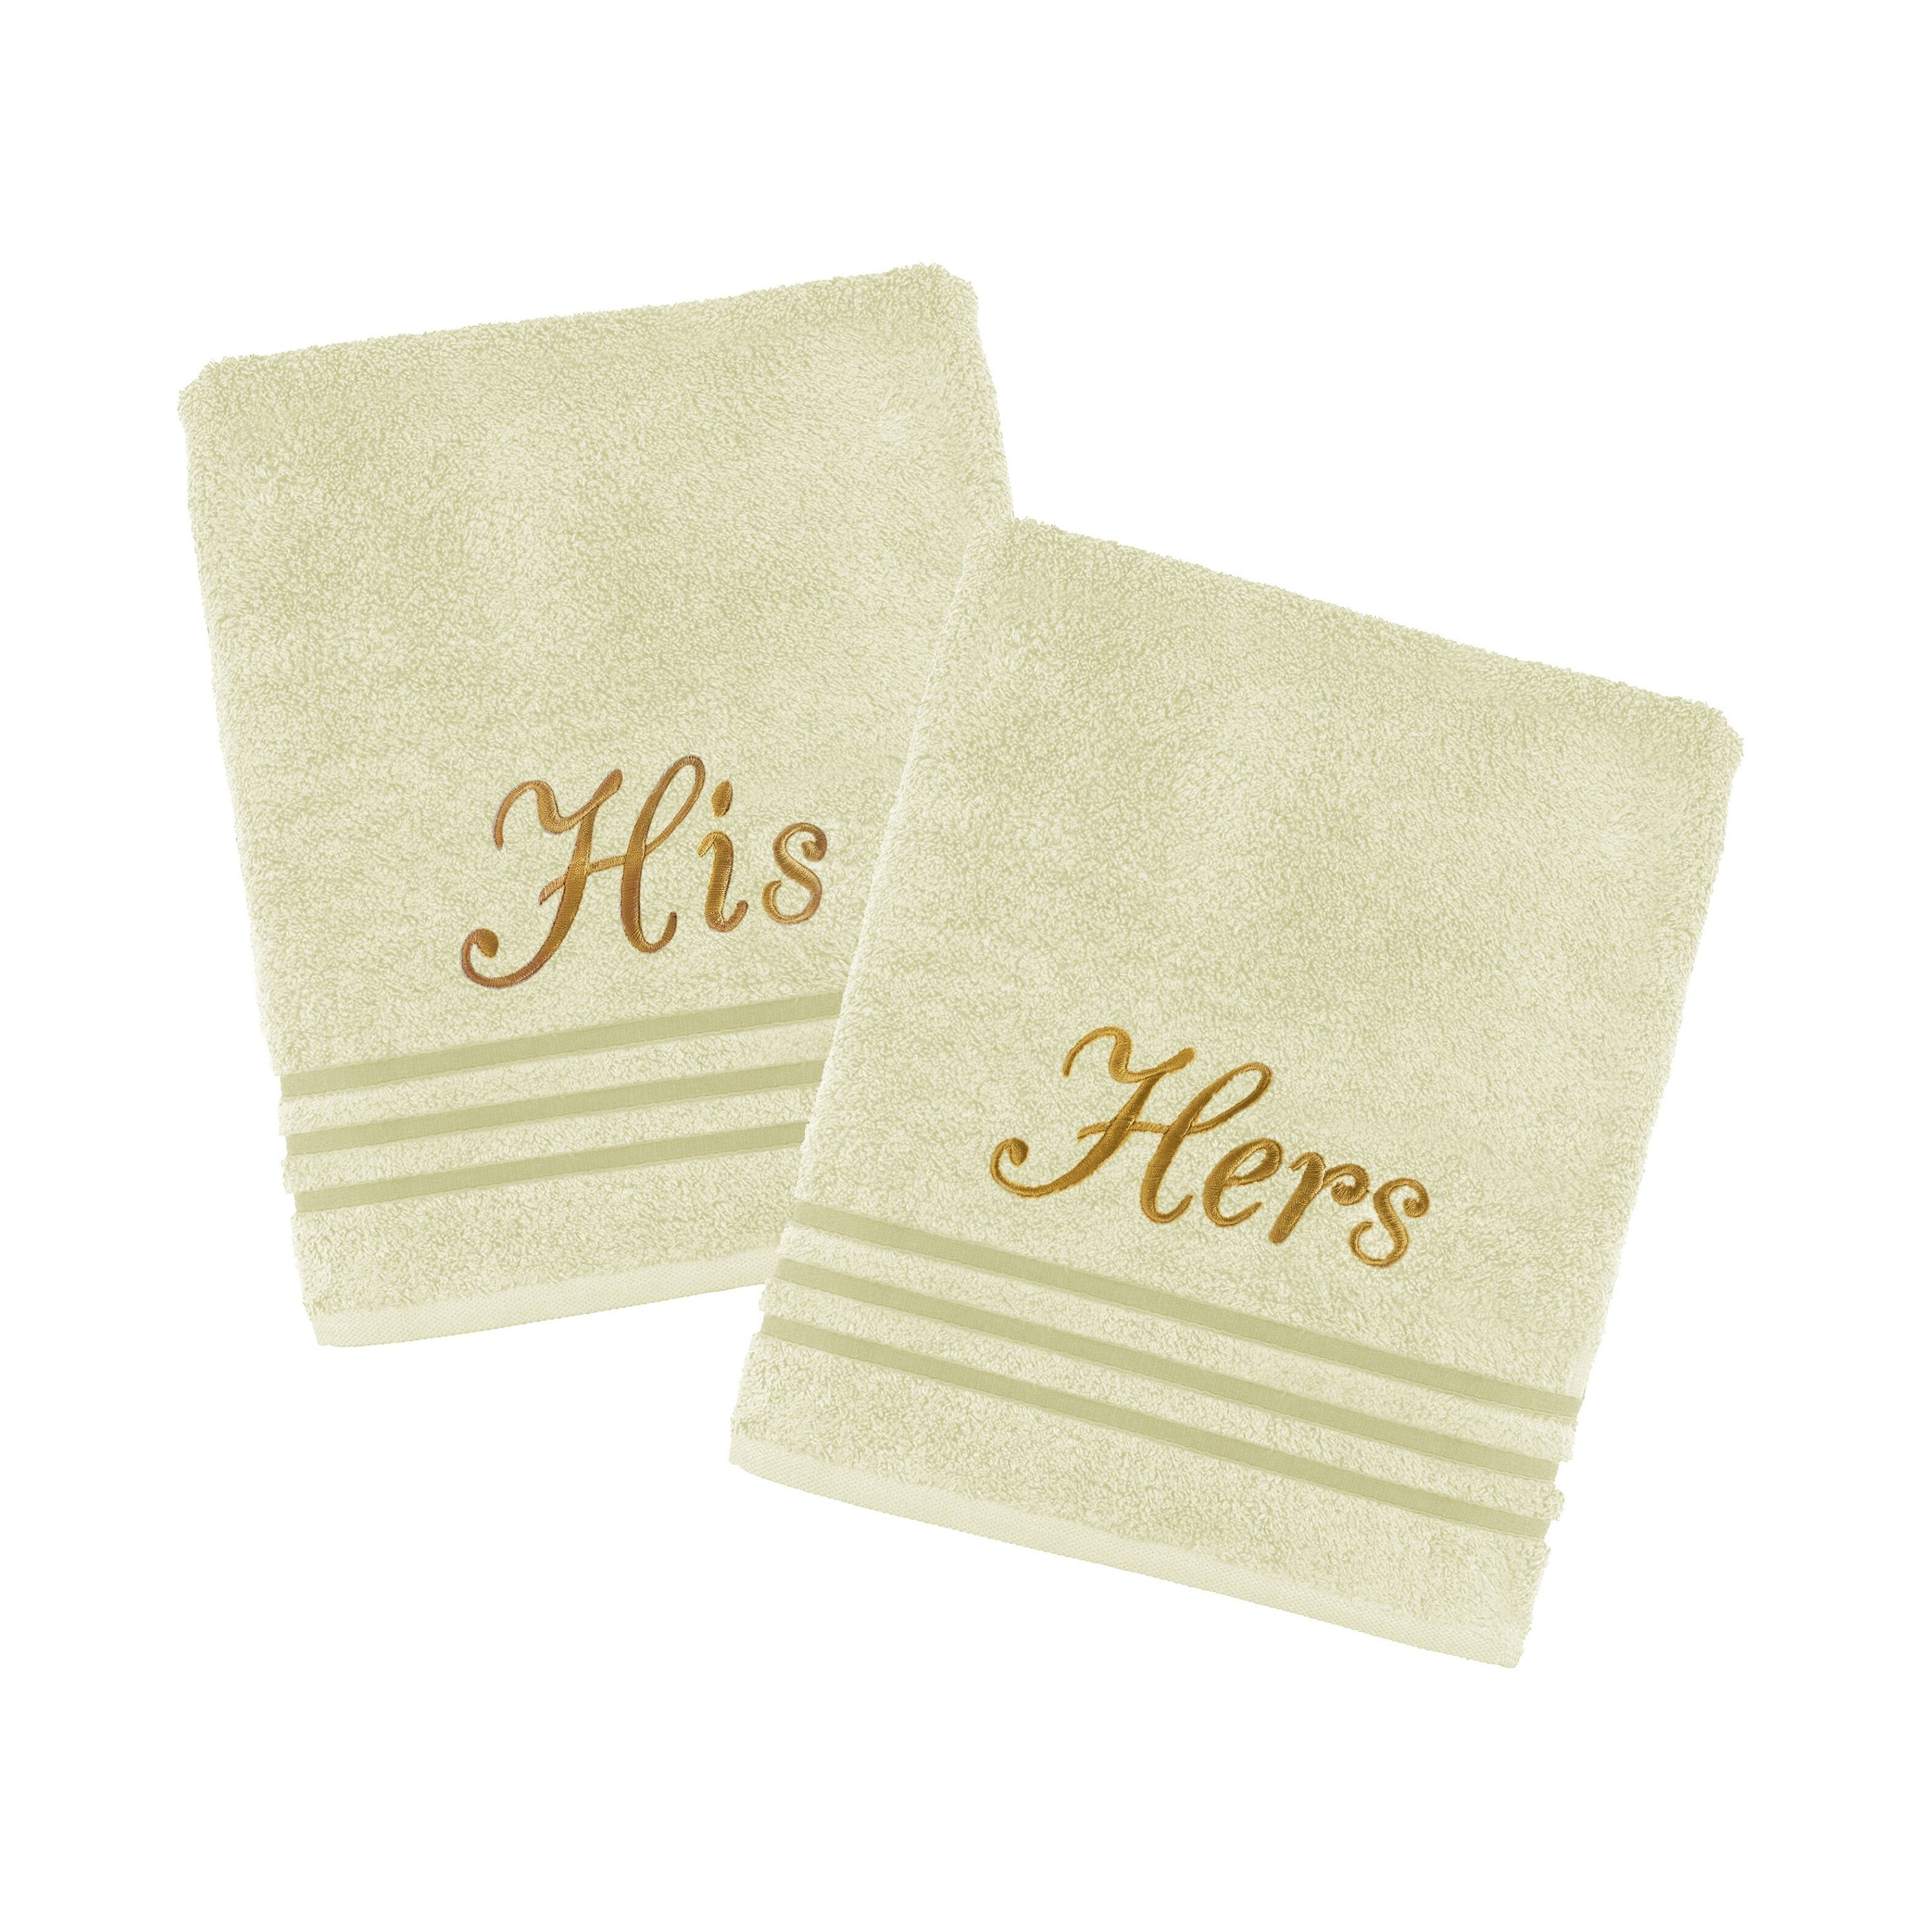 PERSONALISED EMBROIDERED TOWELS Gifts 100/% Egyptian Cotton 500 GSM  12 Colours